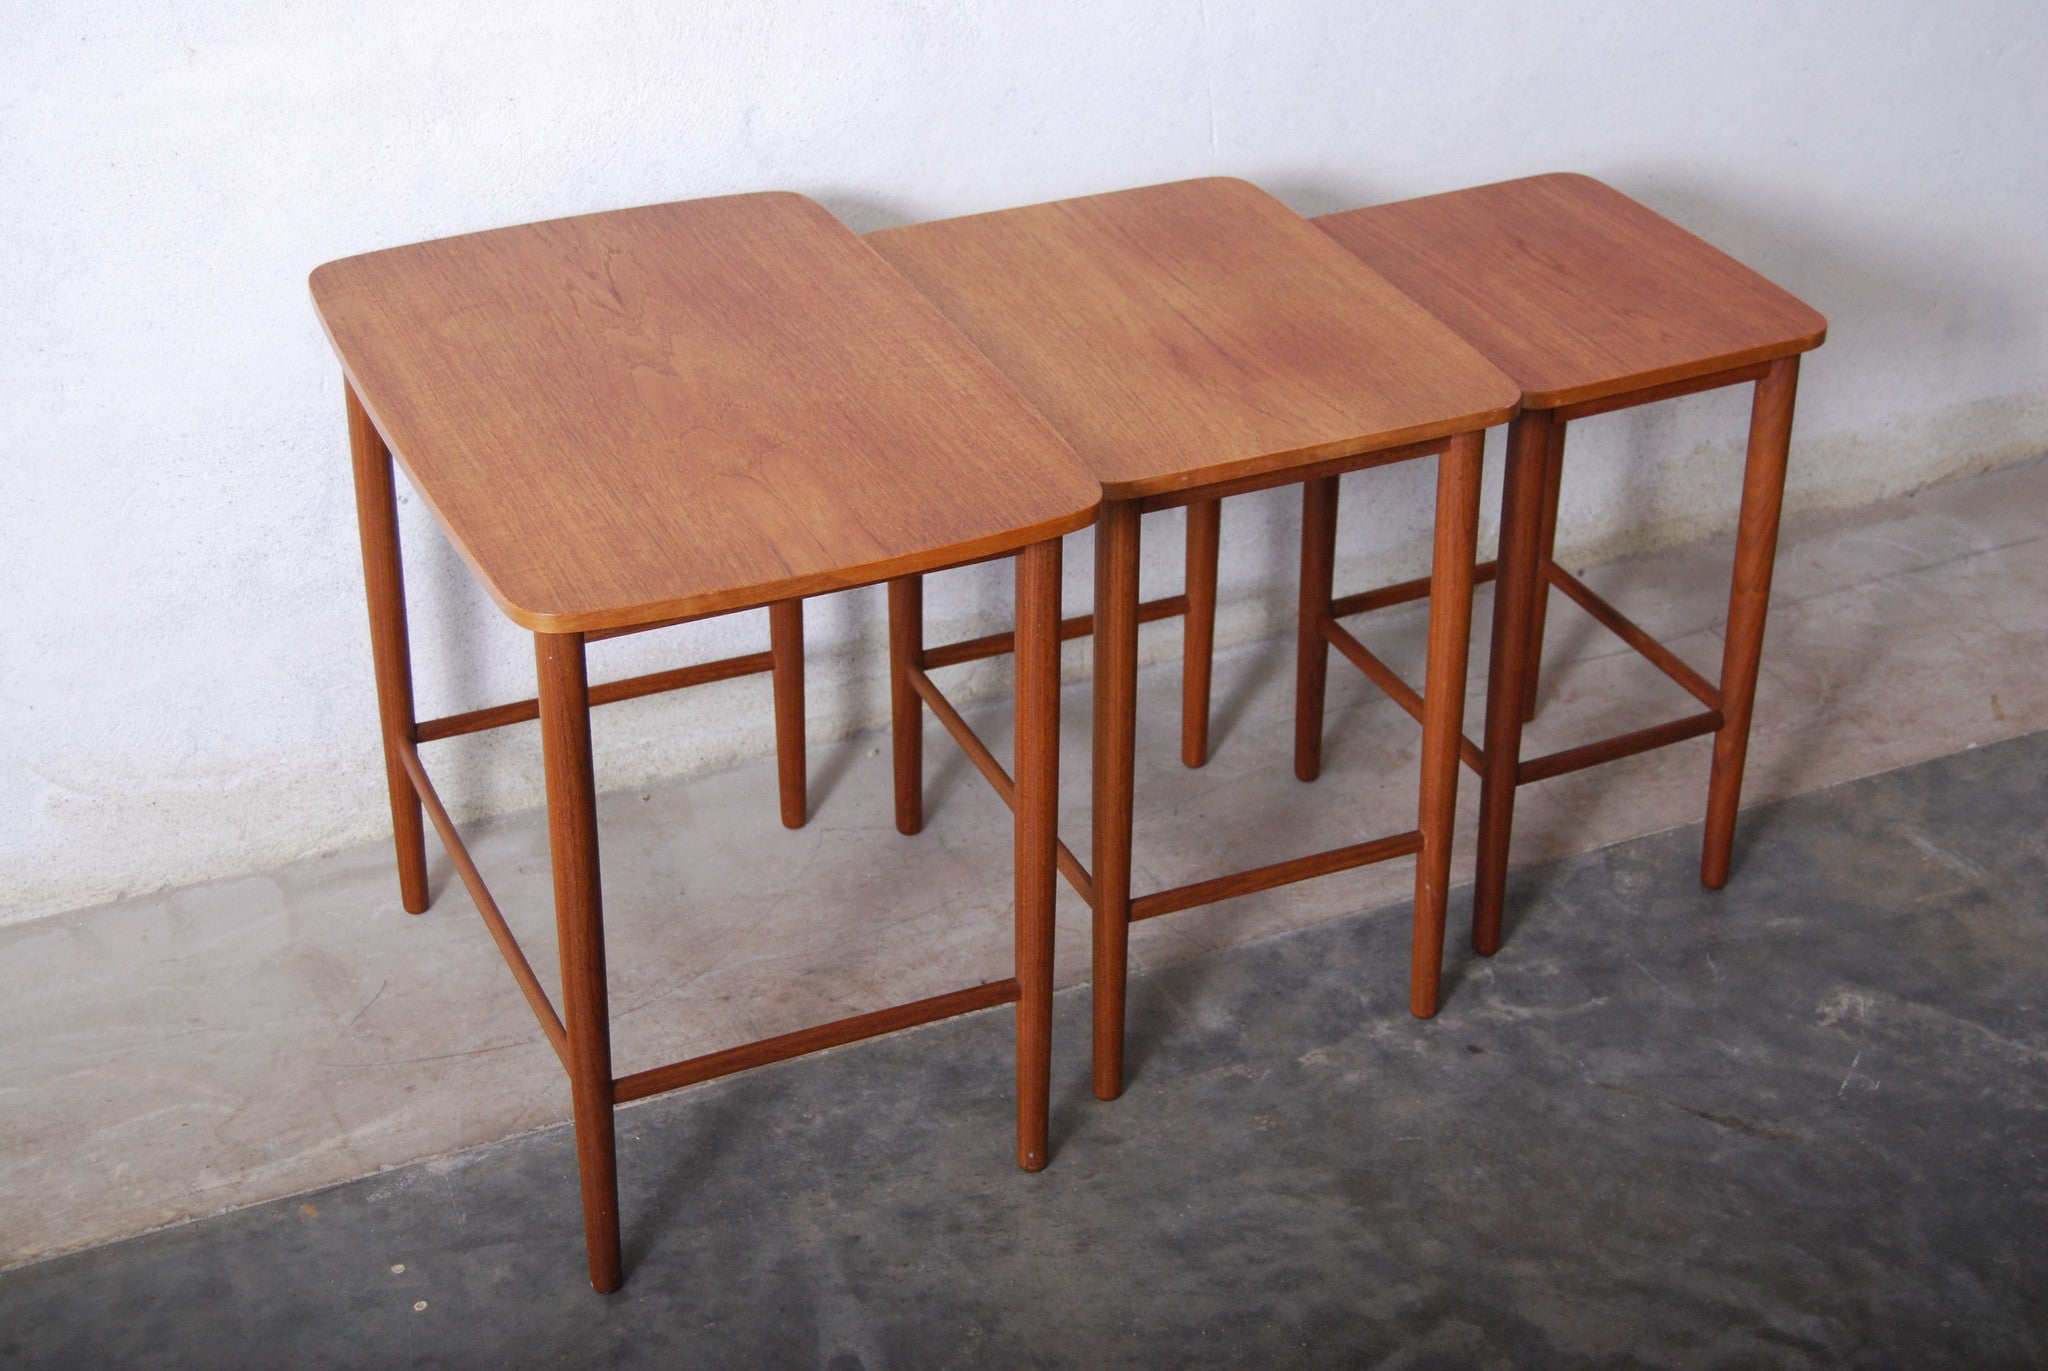 Nest of three tables in teak